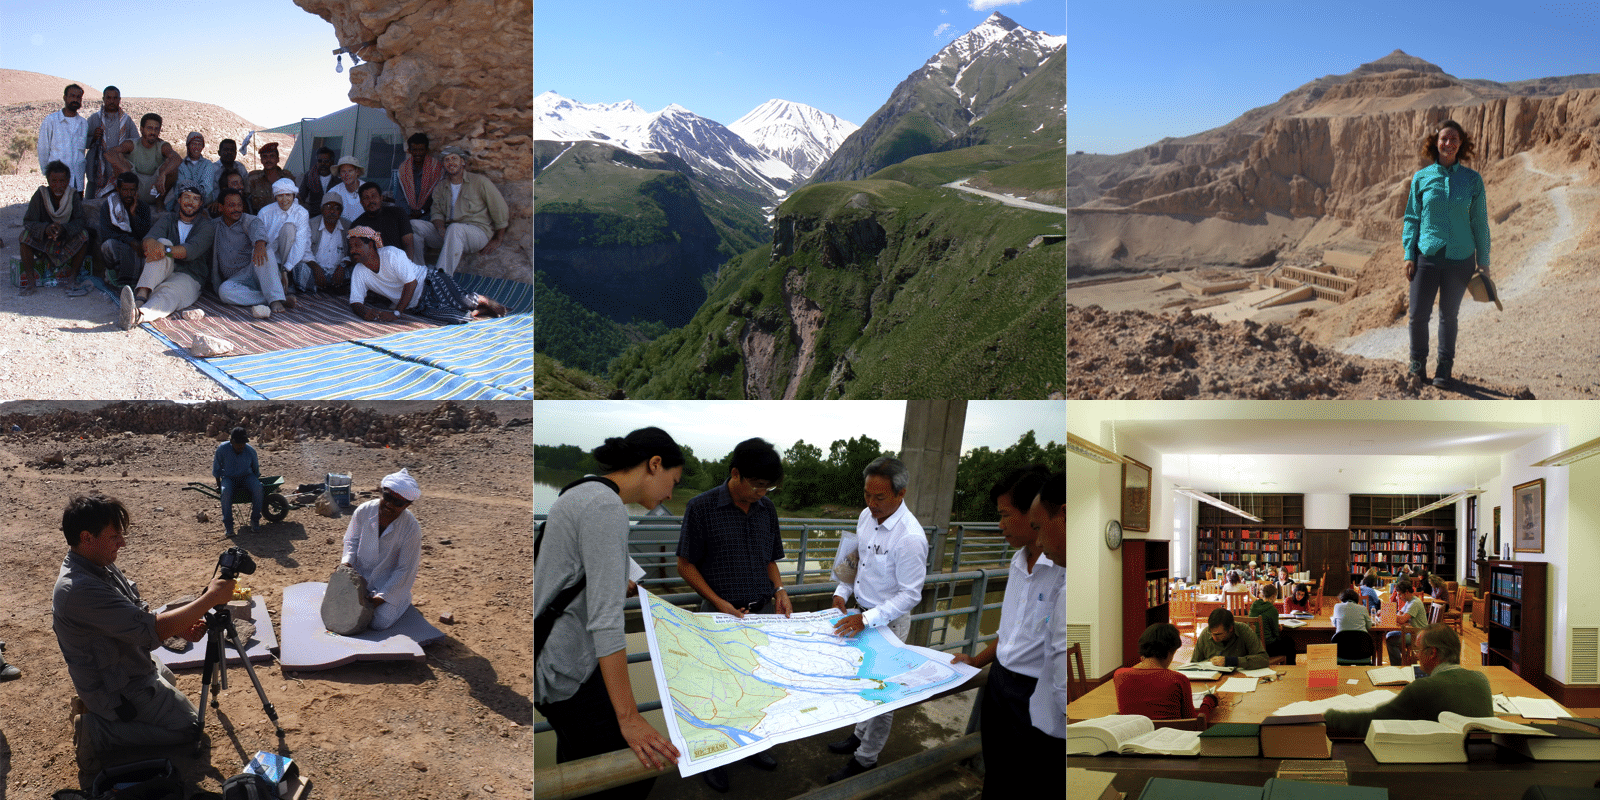 Applications Now Open: Council of American Overseas Research Centers (CAORC) Fellowships for International Research